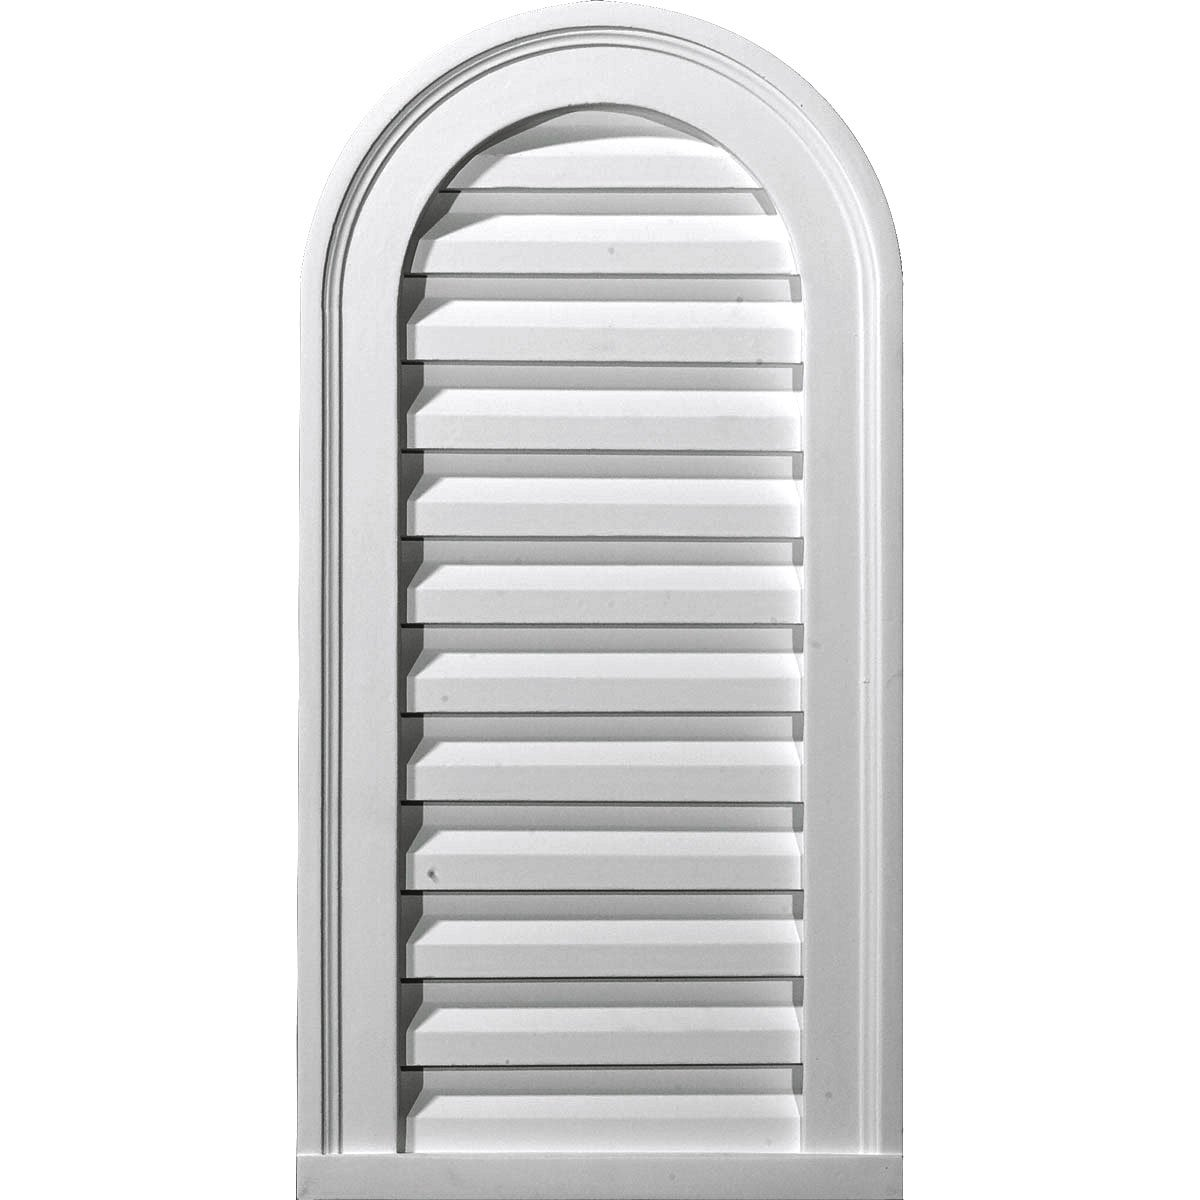 Ekena Millwork GVCA12X24F 12-Inch W x 24-Inch H x 1 7/8-Inch P Cathedral Gable Vent Louver, Functional